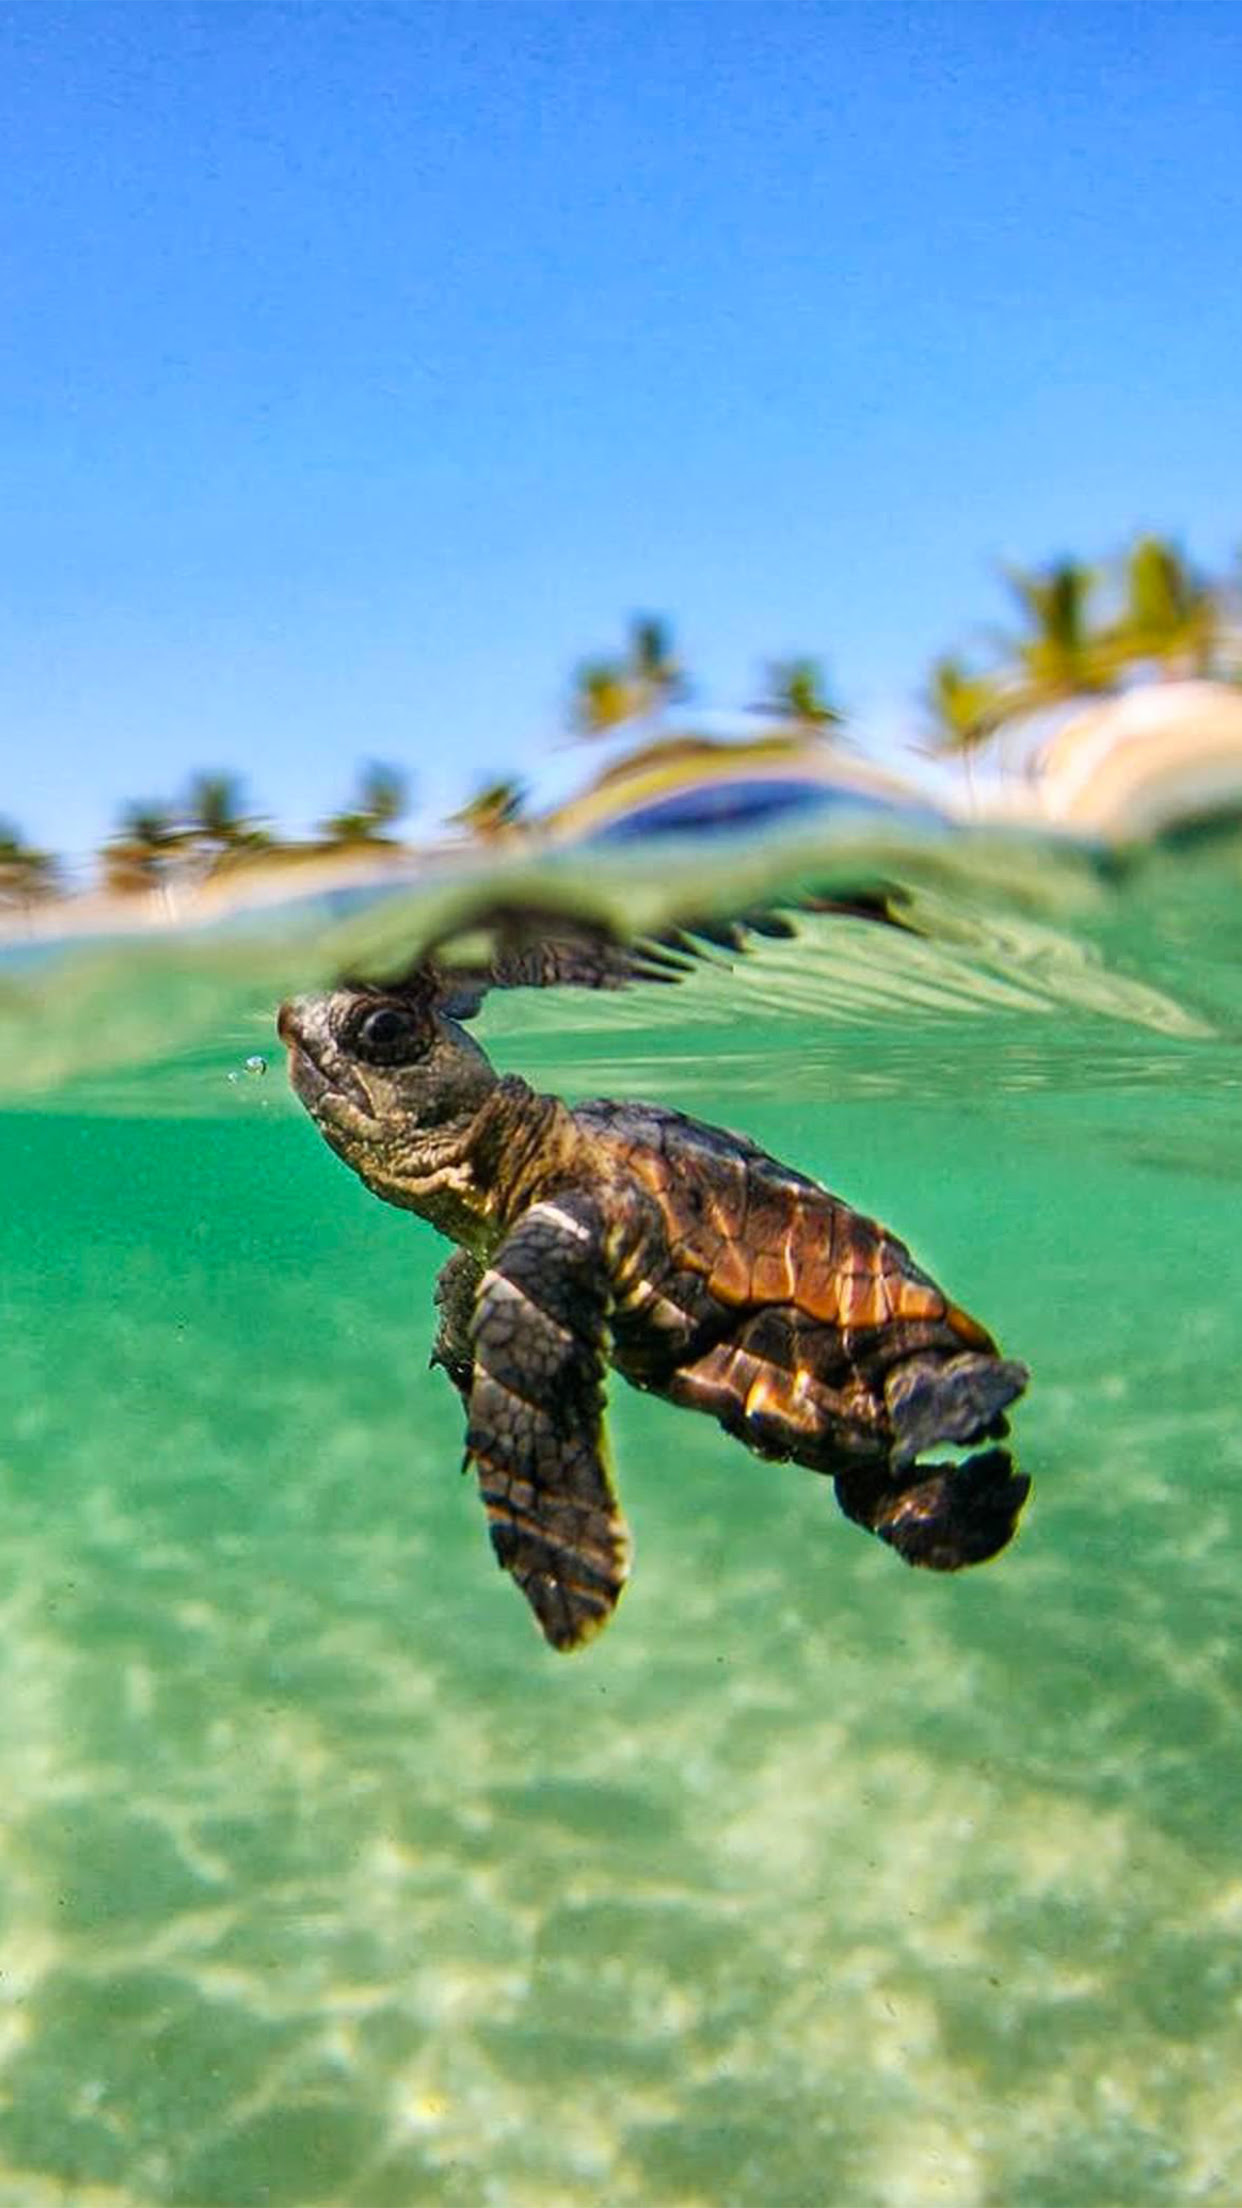 Turtle Lagon Wallpaper For Iphone X 8 7 6 Free Download On